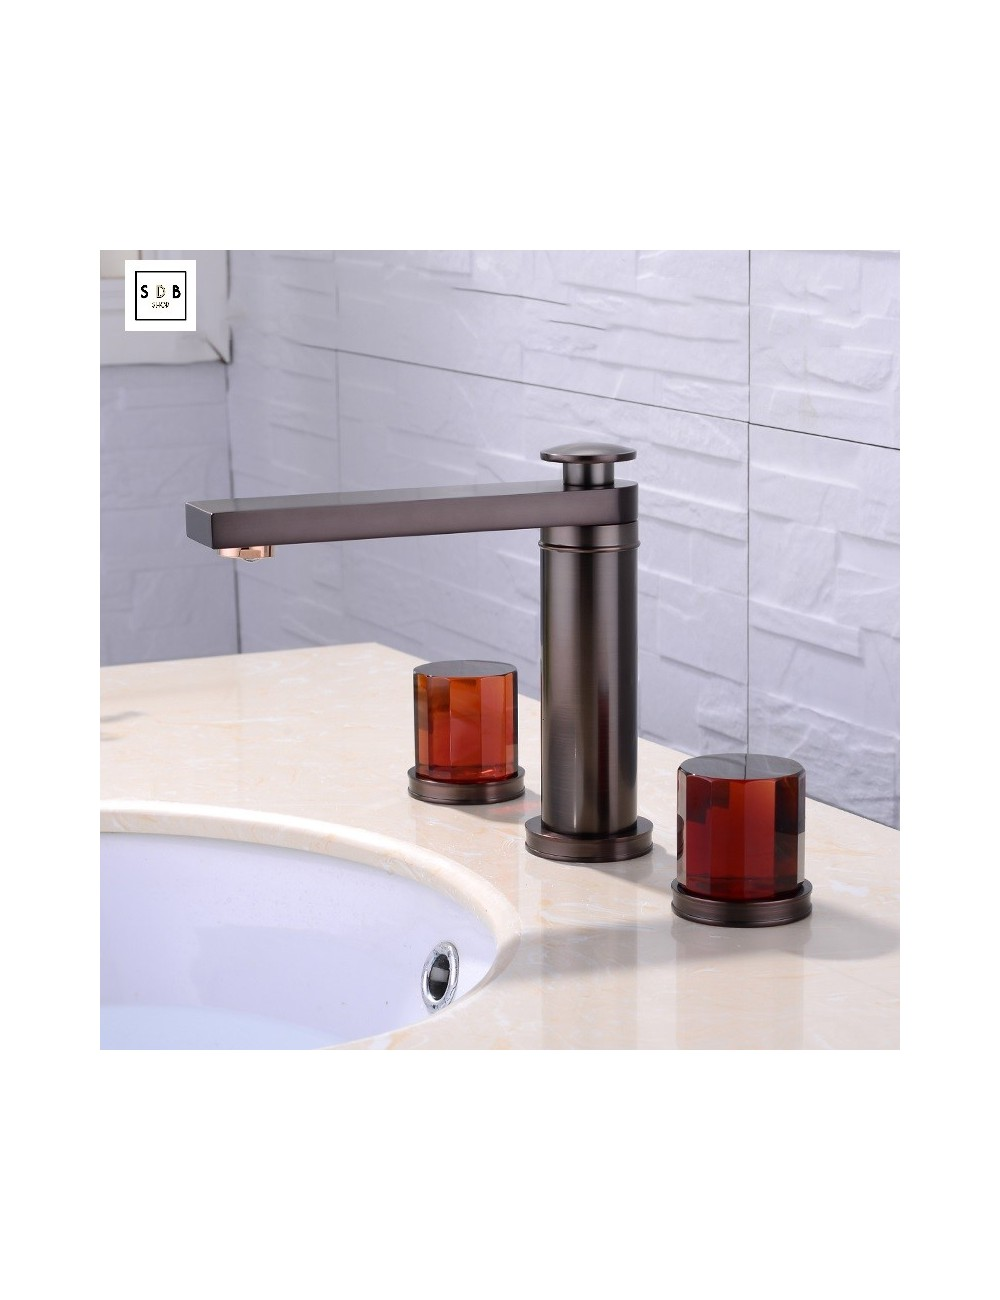 robinet m langeur lavabo sur plage bronze huil salledebains. Black Bedroom Furniture Sets. Home Design Ideas